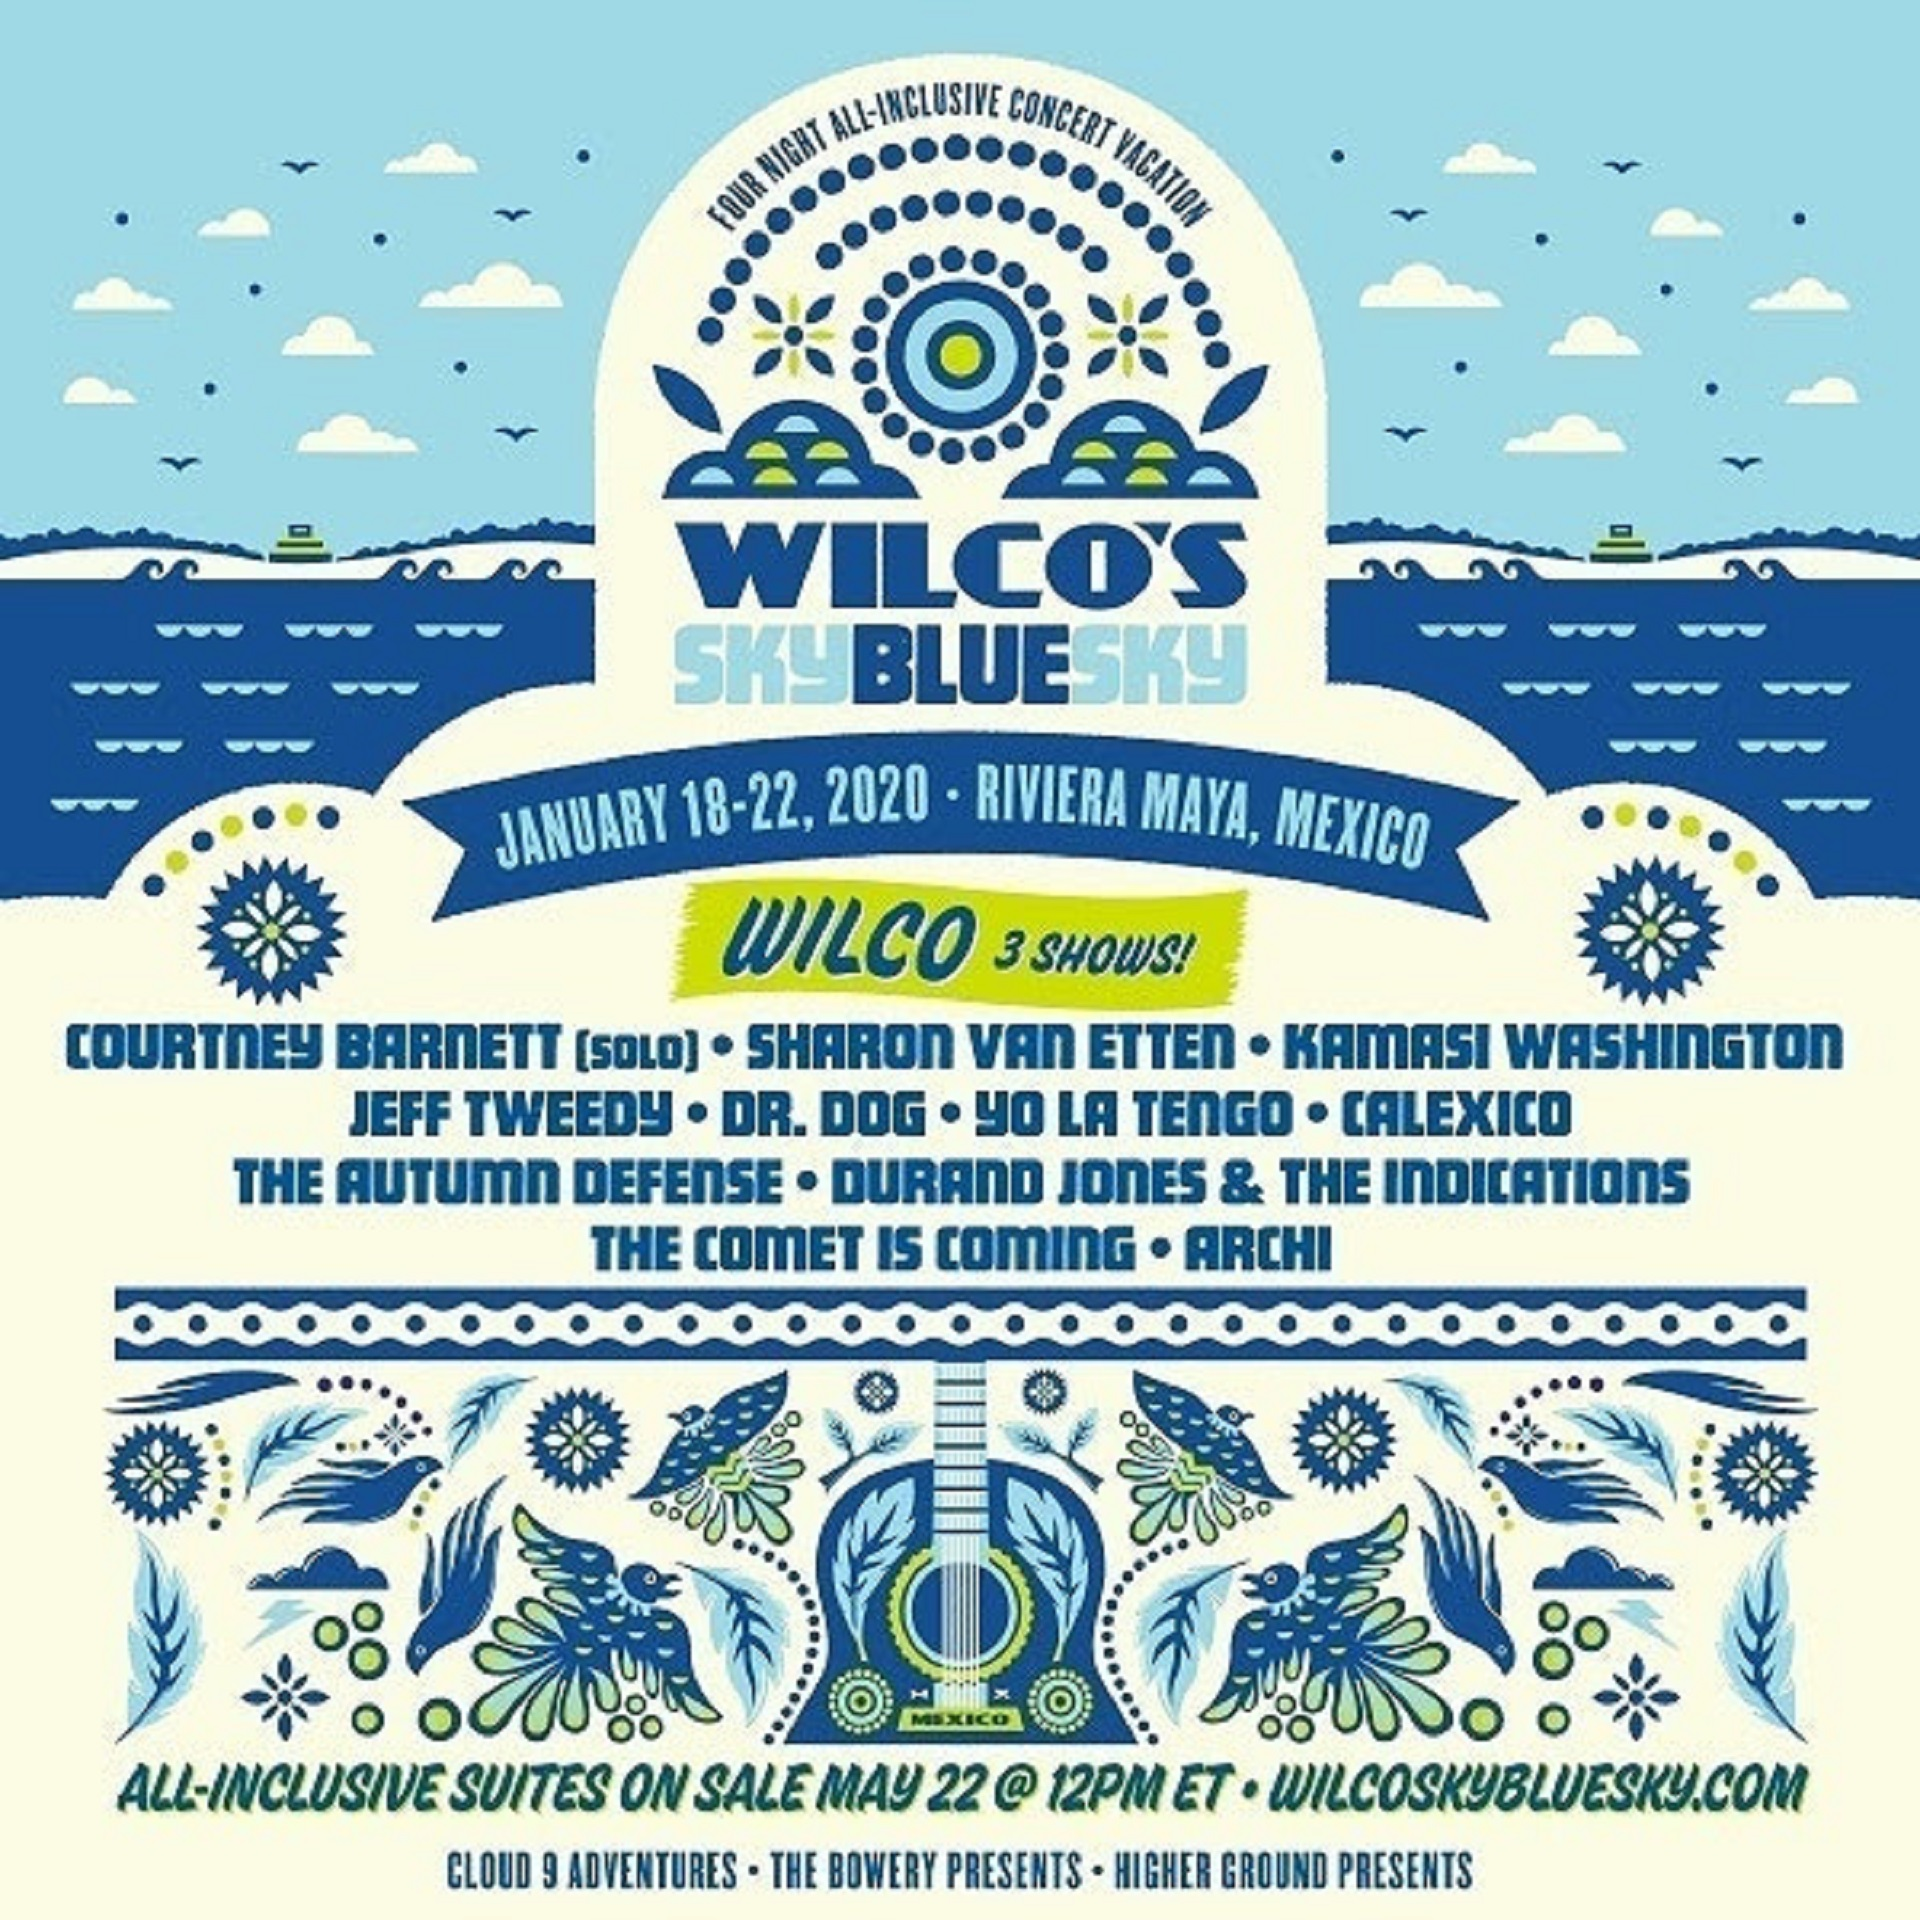 Wilco Announces Sky Blue Sky, January 18-22 in Riviera Maya, Mexico